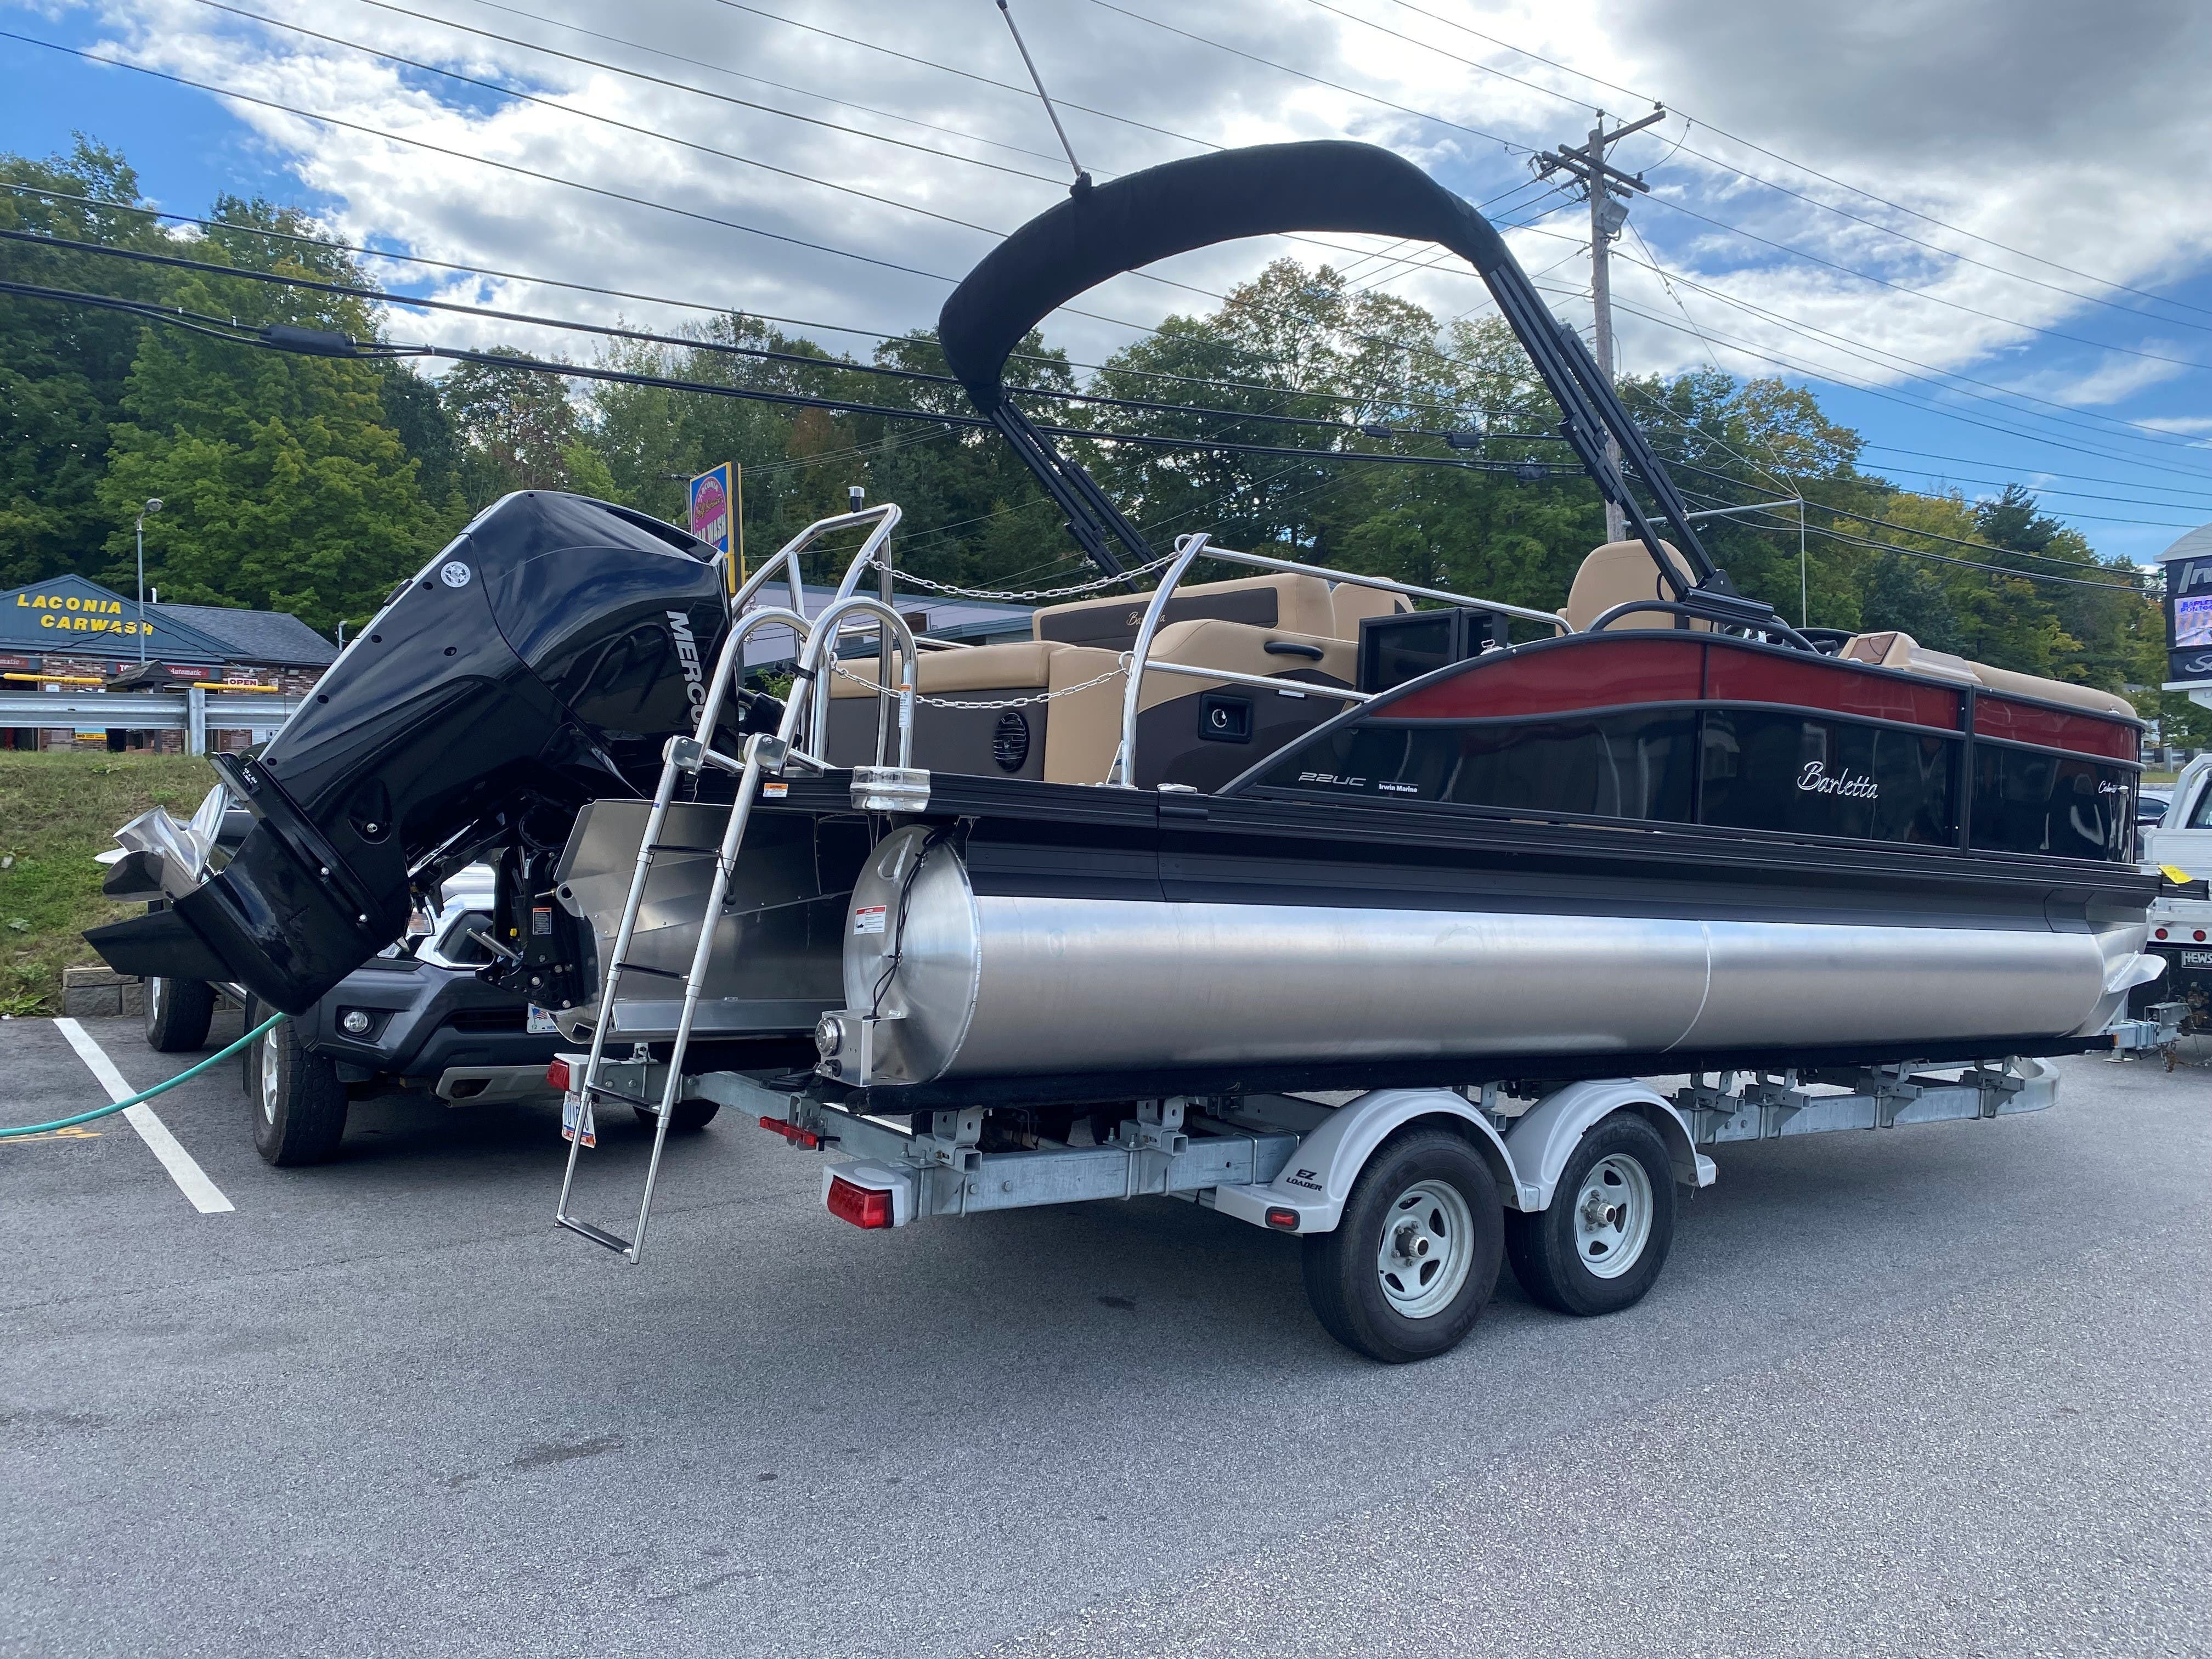 2022 Barletta boat for sale, model of the boat is C22UC & Image # 3 of 12